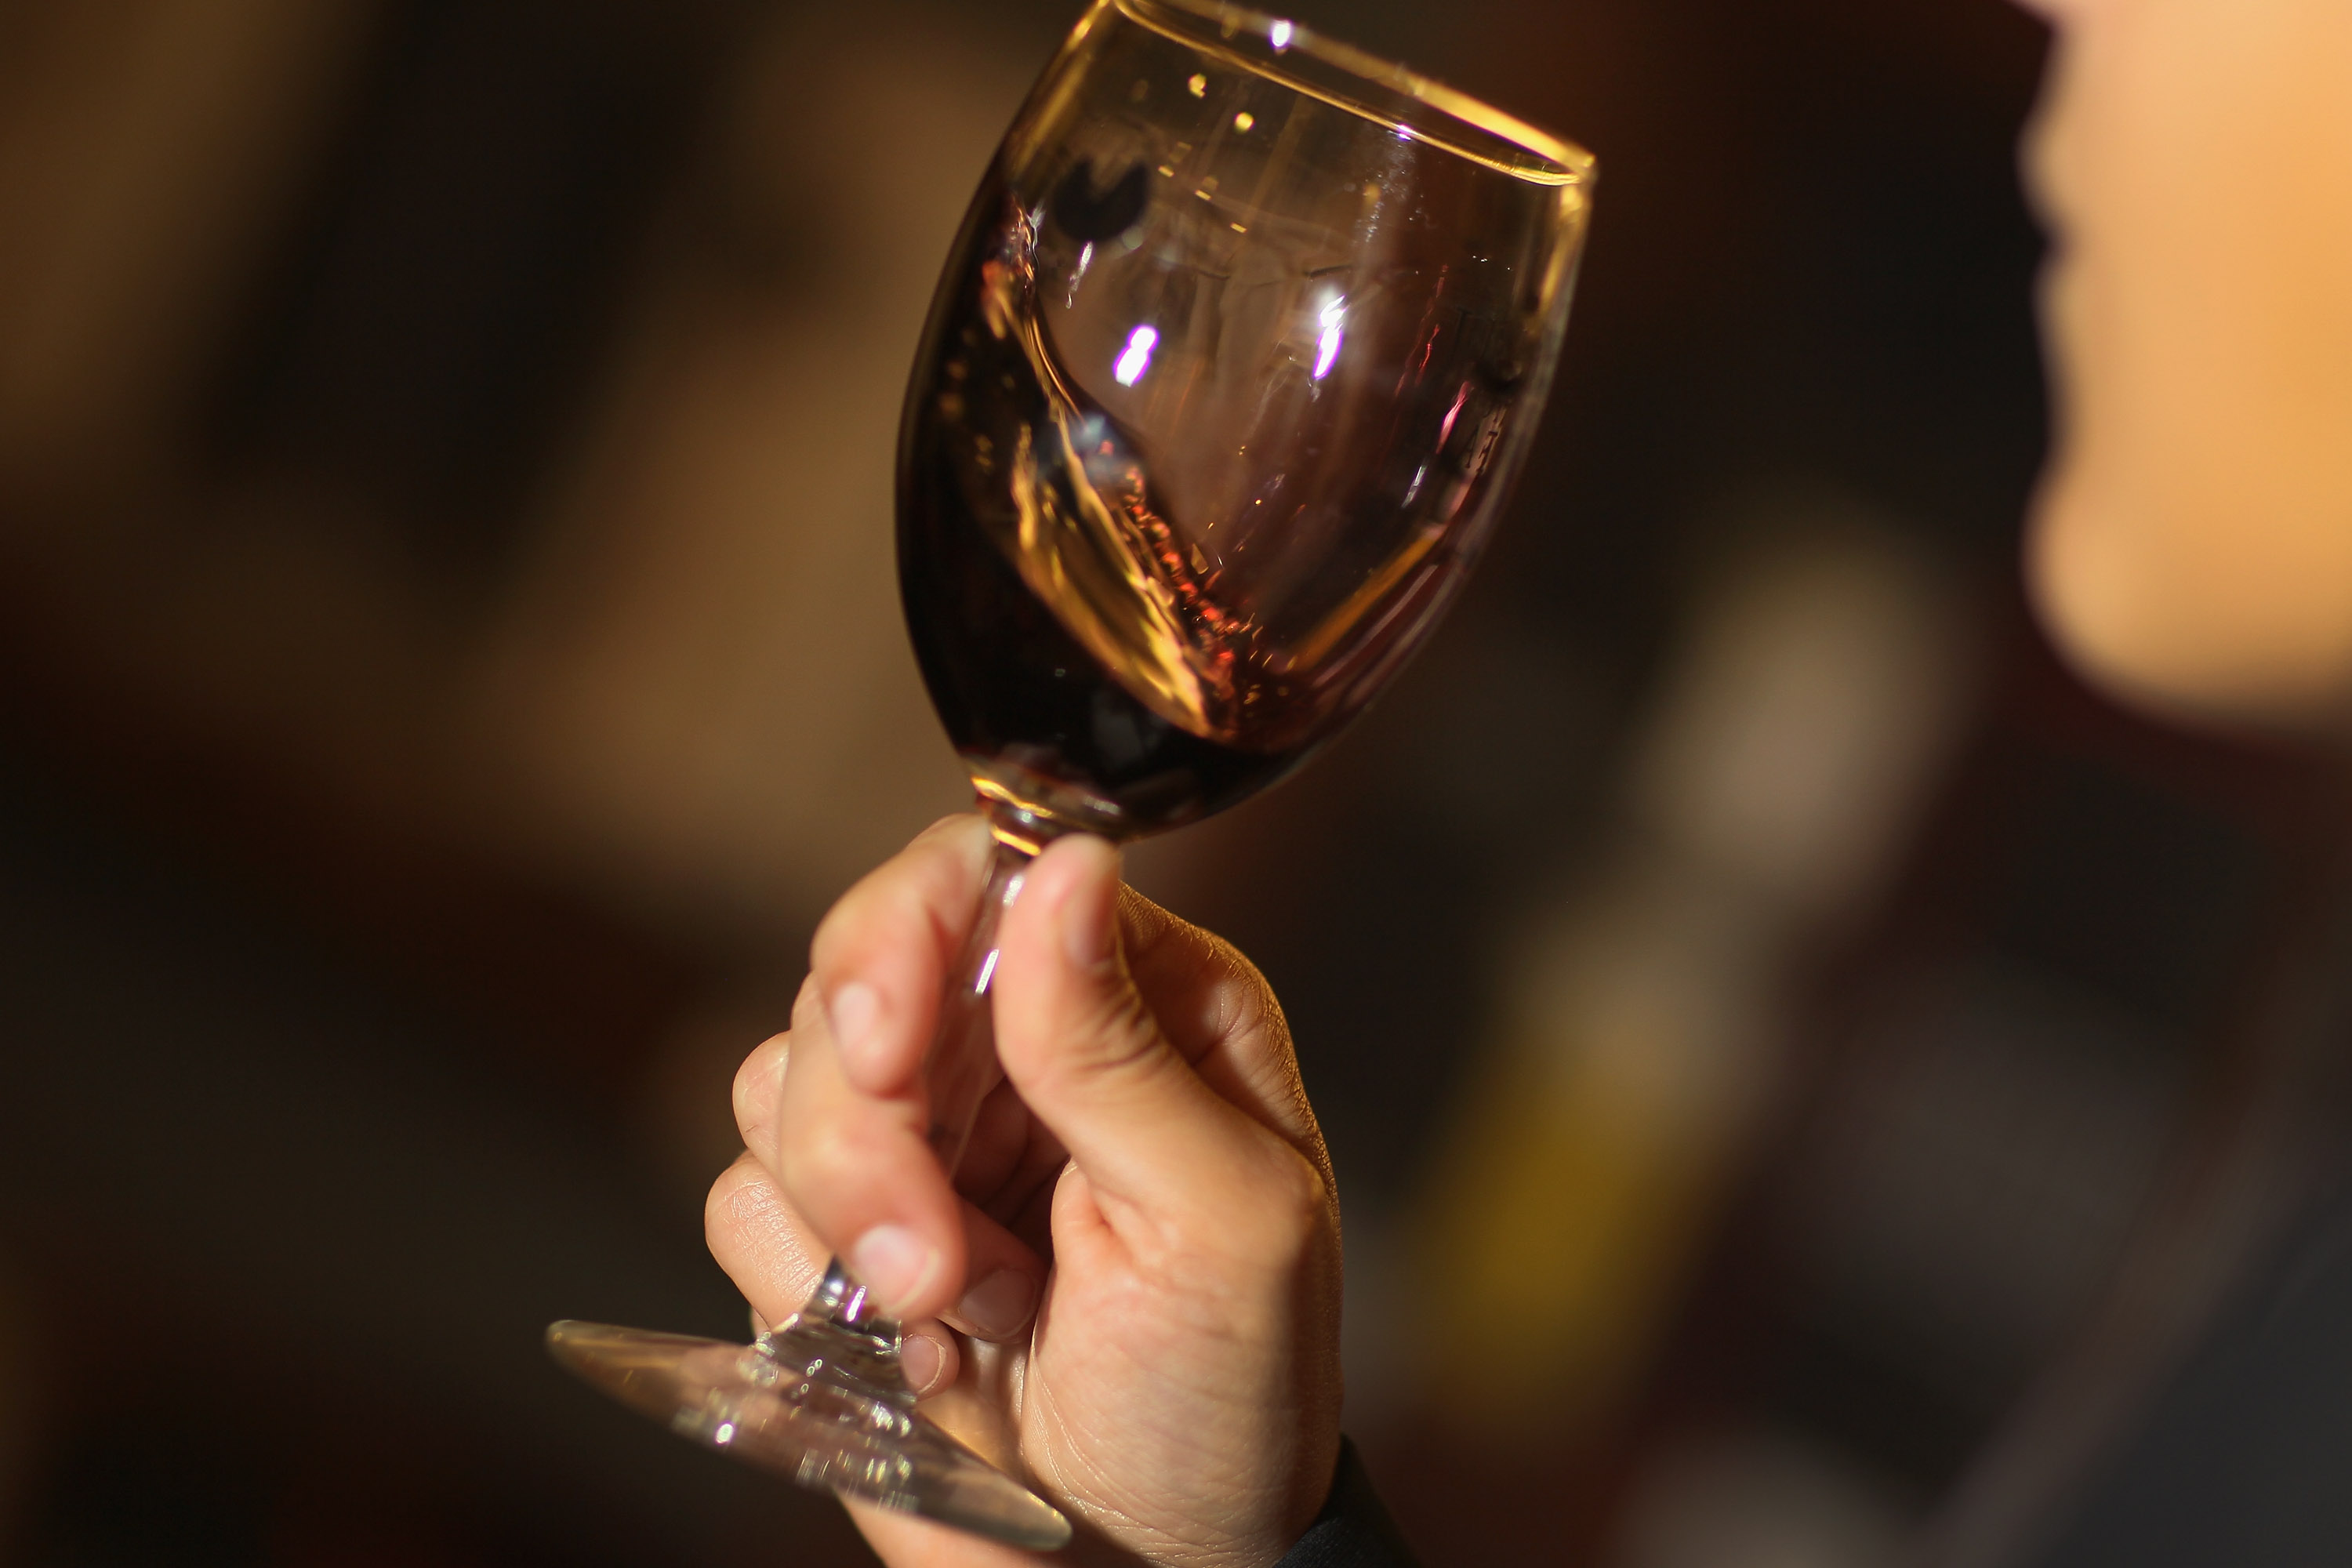 Monica De Abreu tastes a red wine as she decides which wines to purchase to sell at Global Liquors store on June 6, 2011 in Miami, Florida.